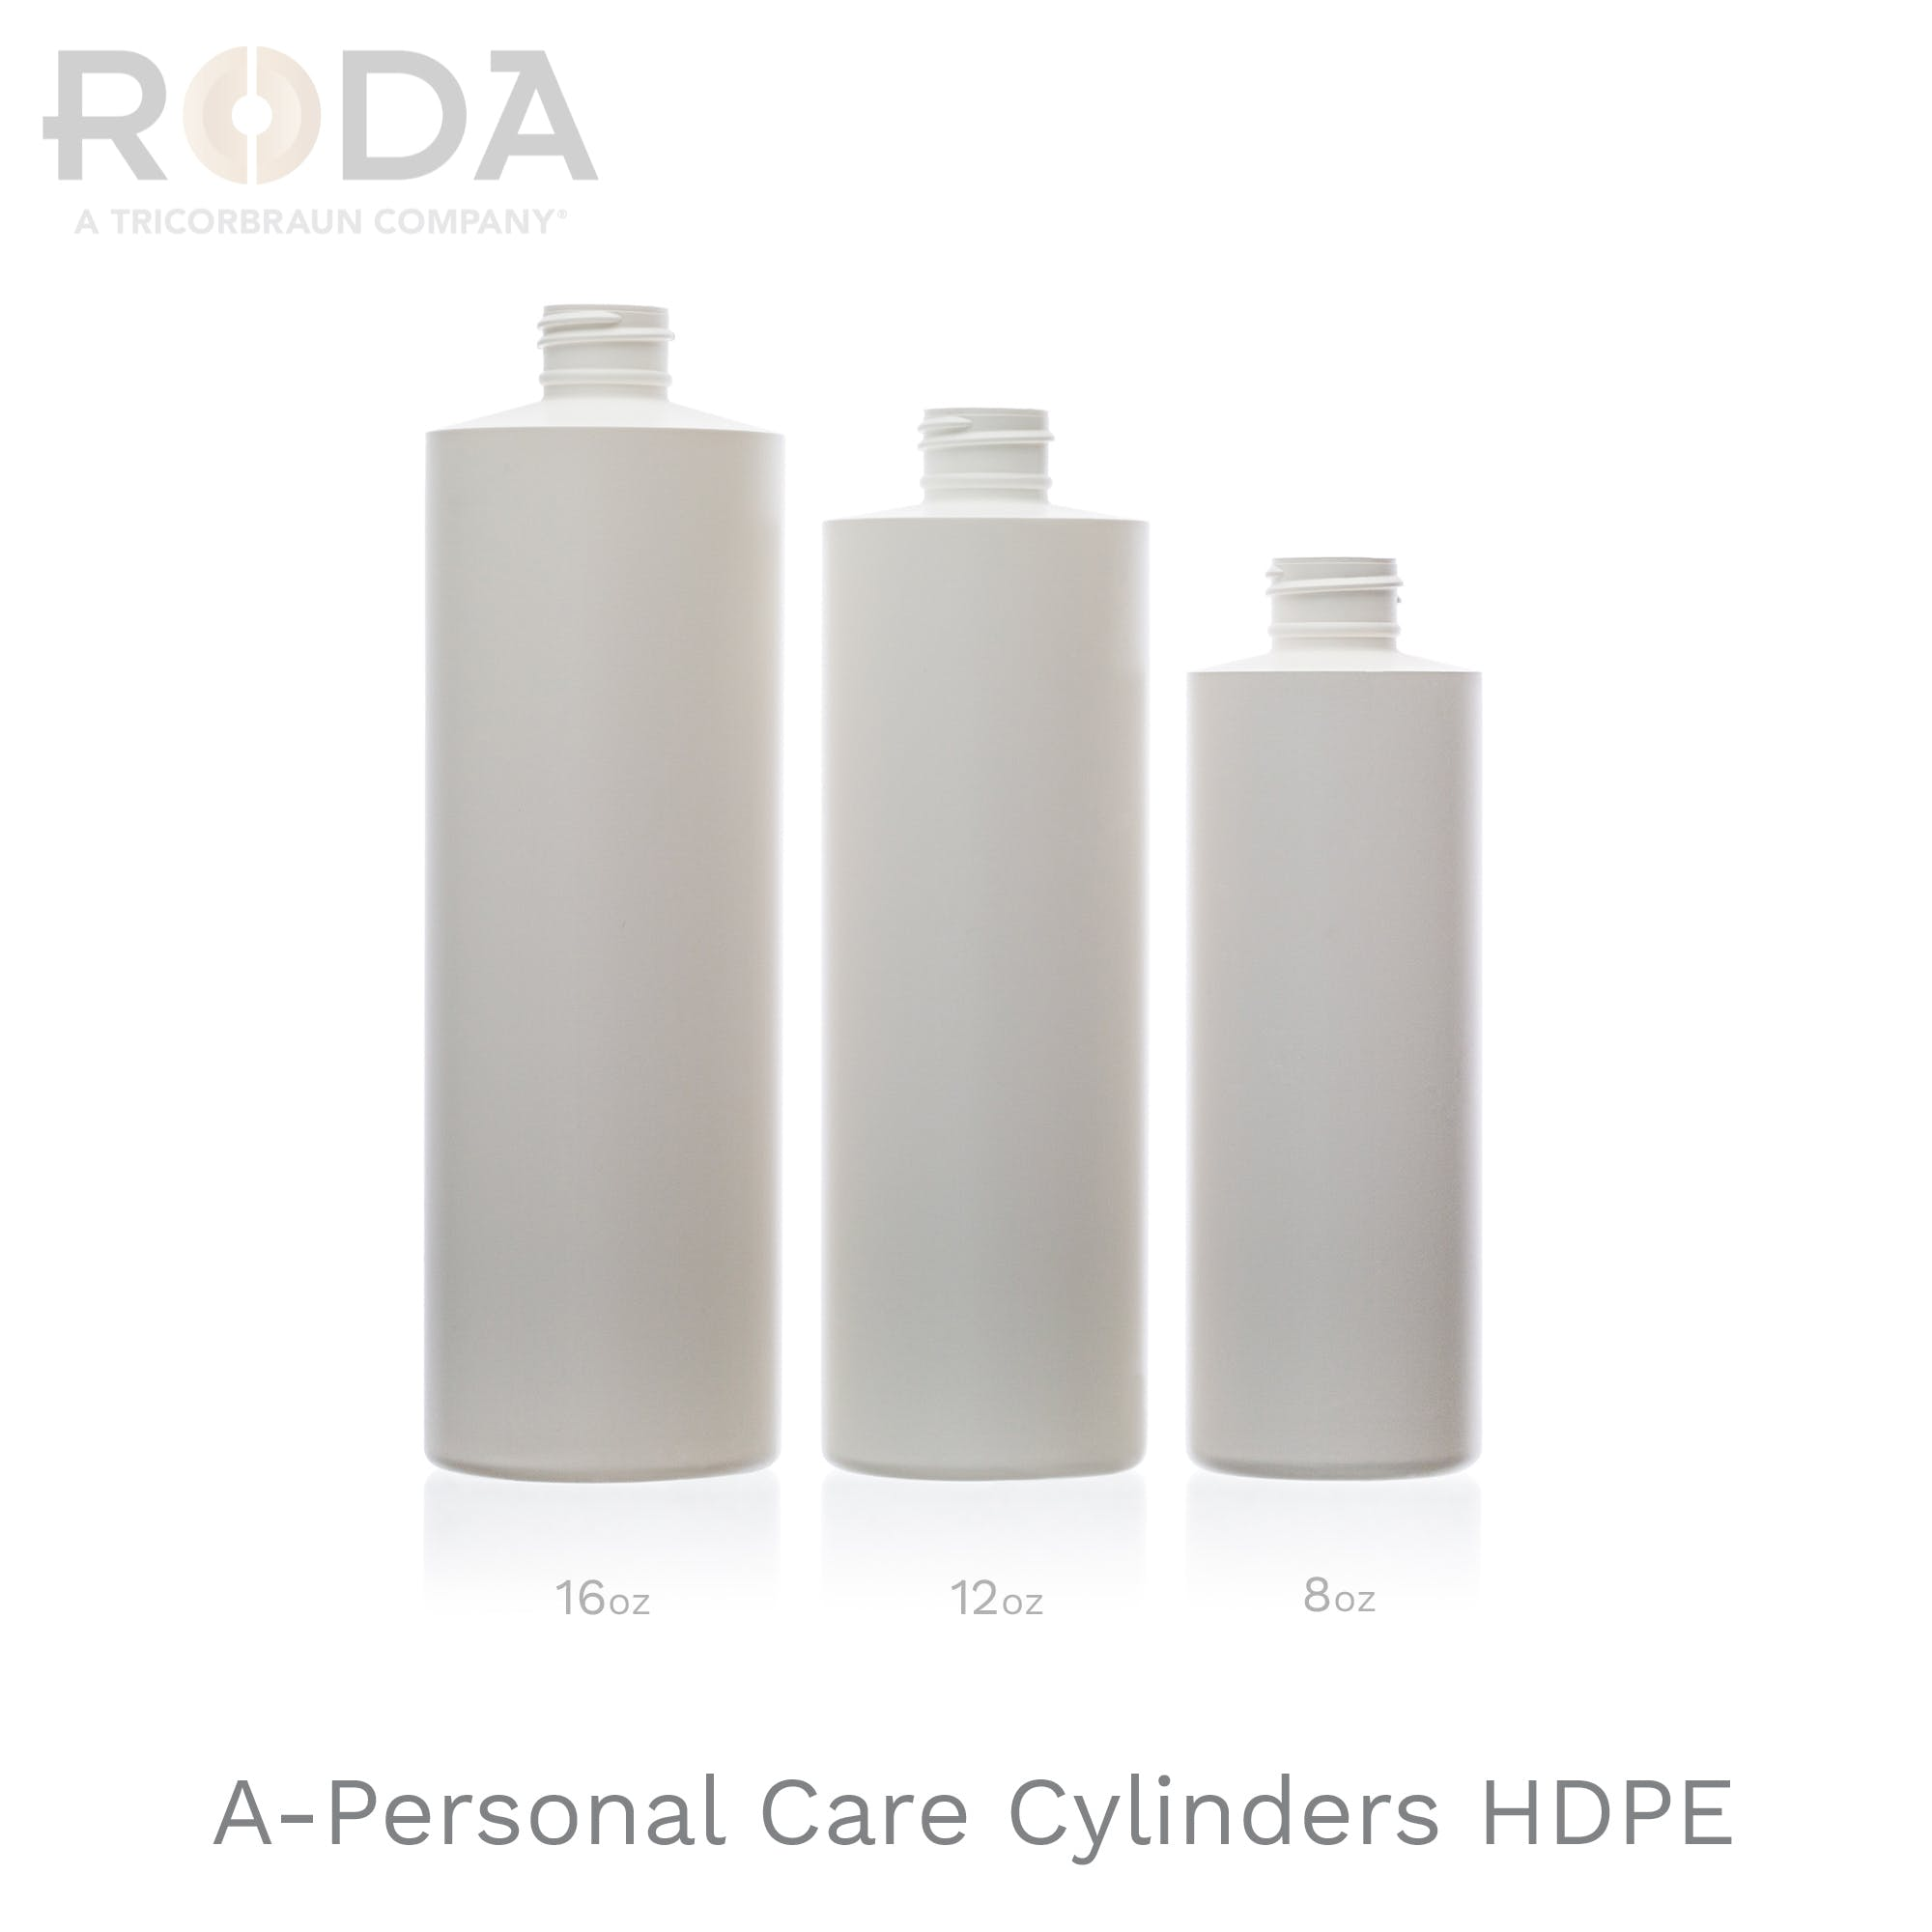 A-Personal Care Cylinders HDPE